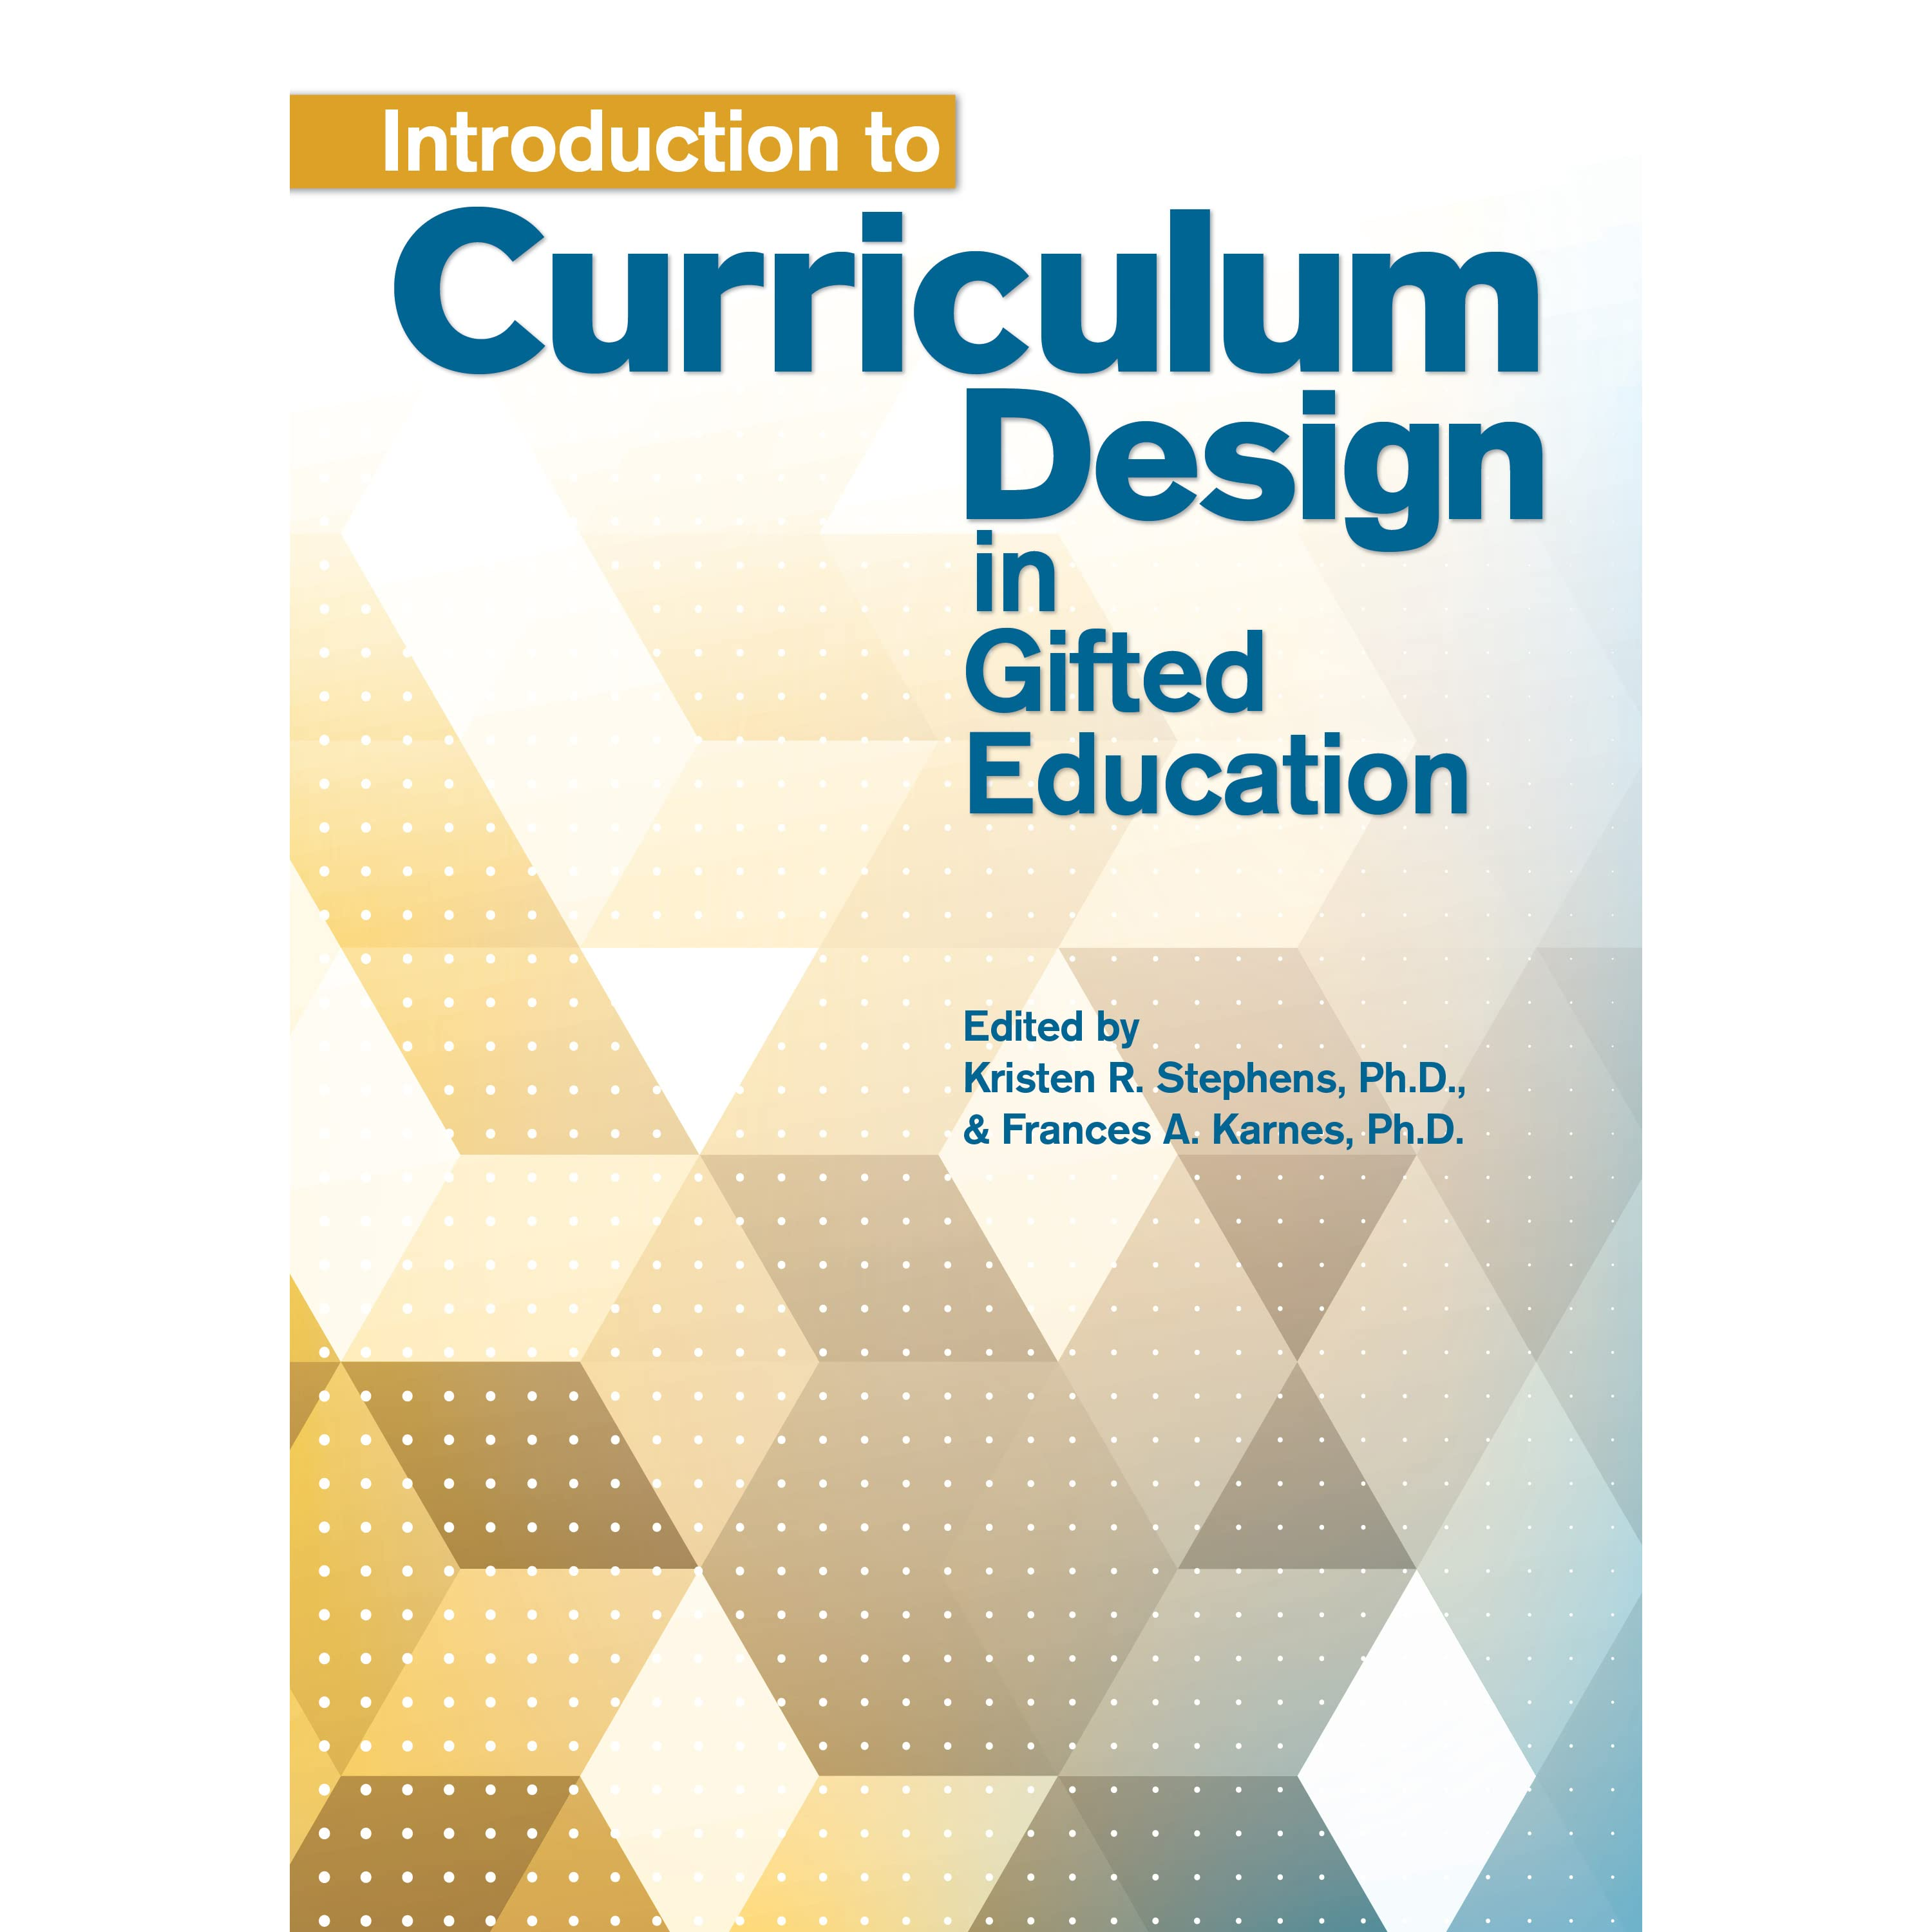 Book Giveaway For Introduction To Curriculum Design In Gifted Education By Kristen Stephens Dec